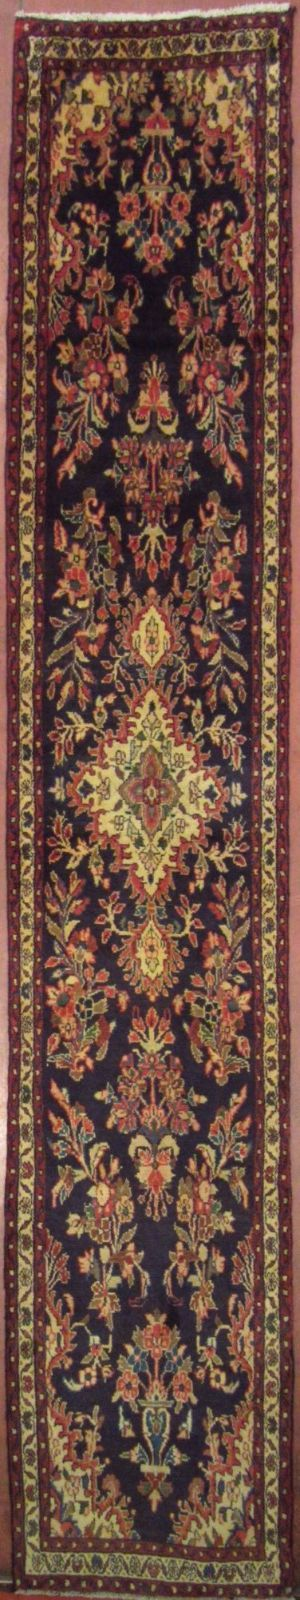 656 best *Carpet & Rug* images on Pinterest | Carpets, Beautiful ...